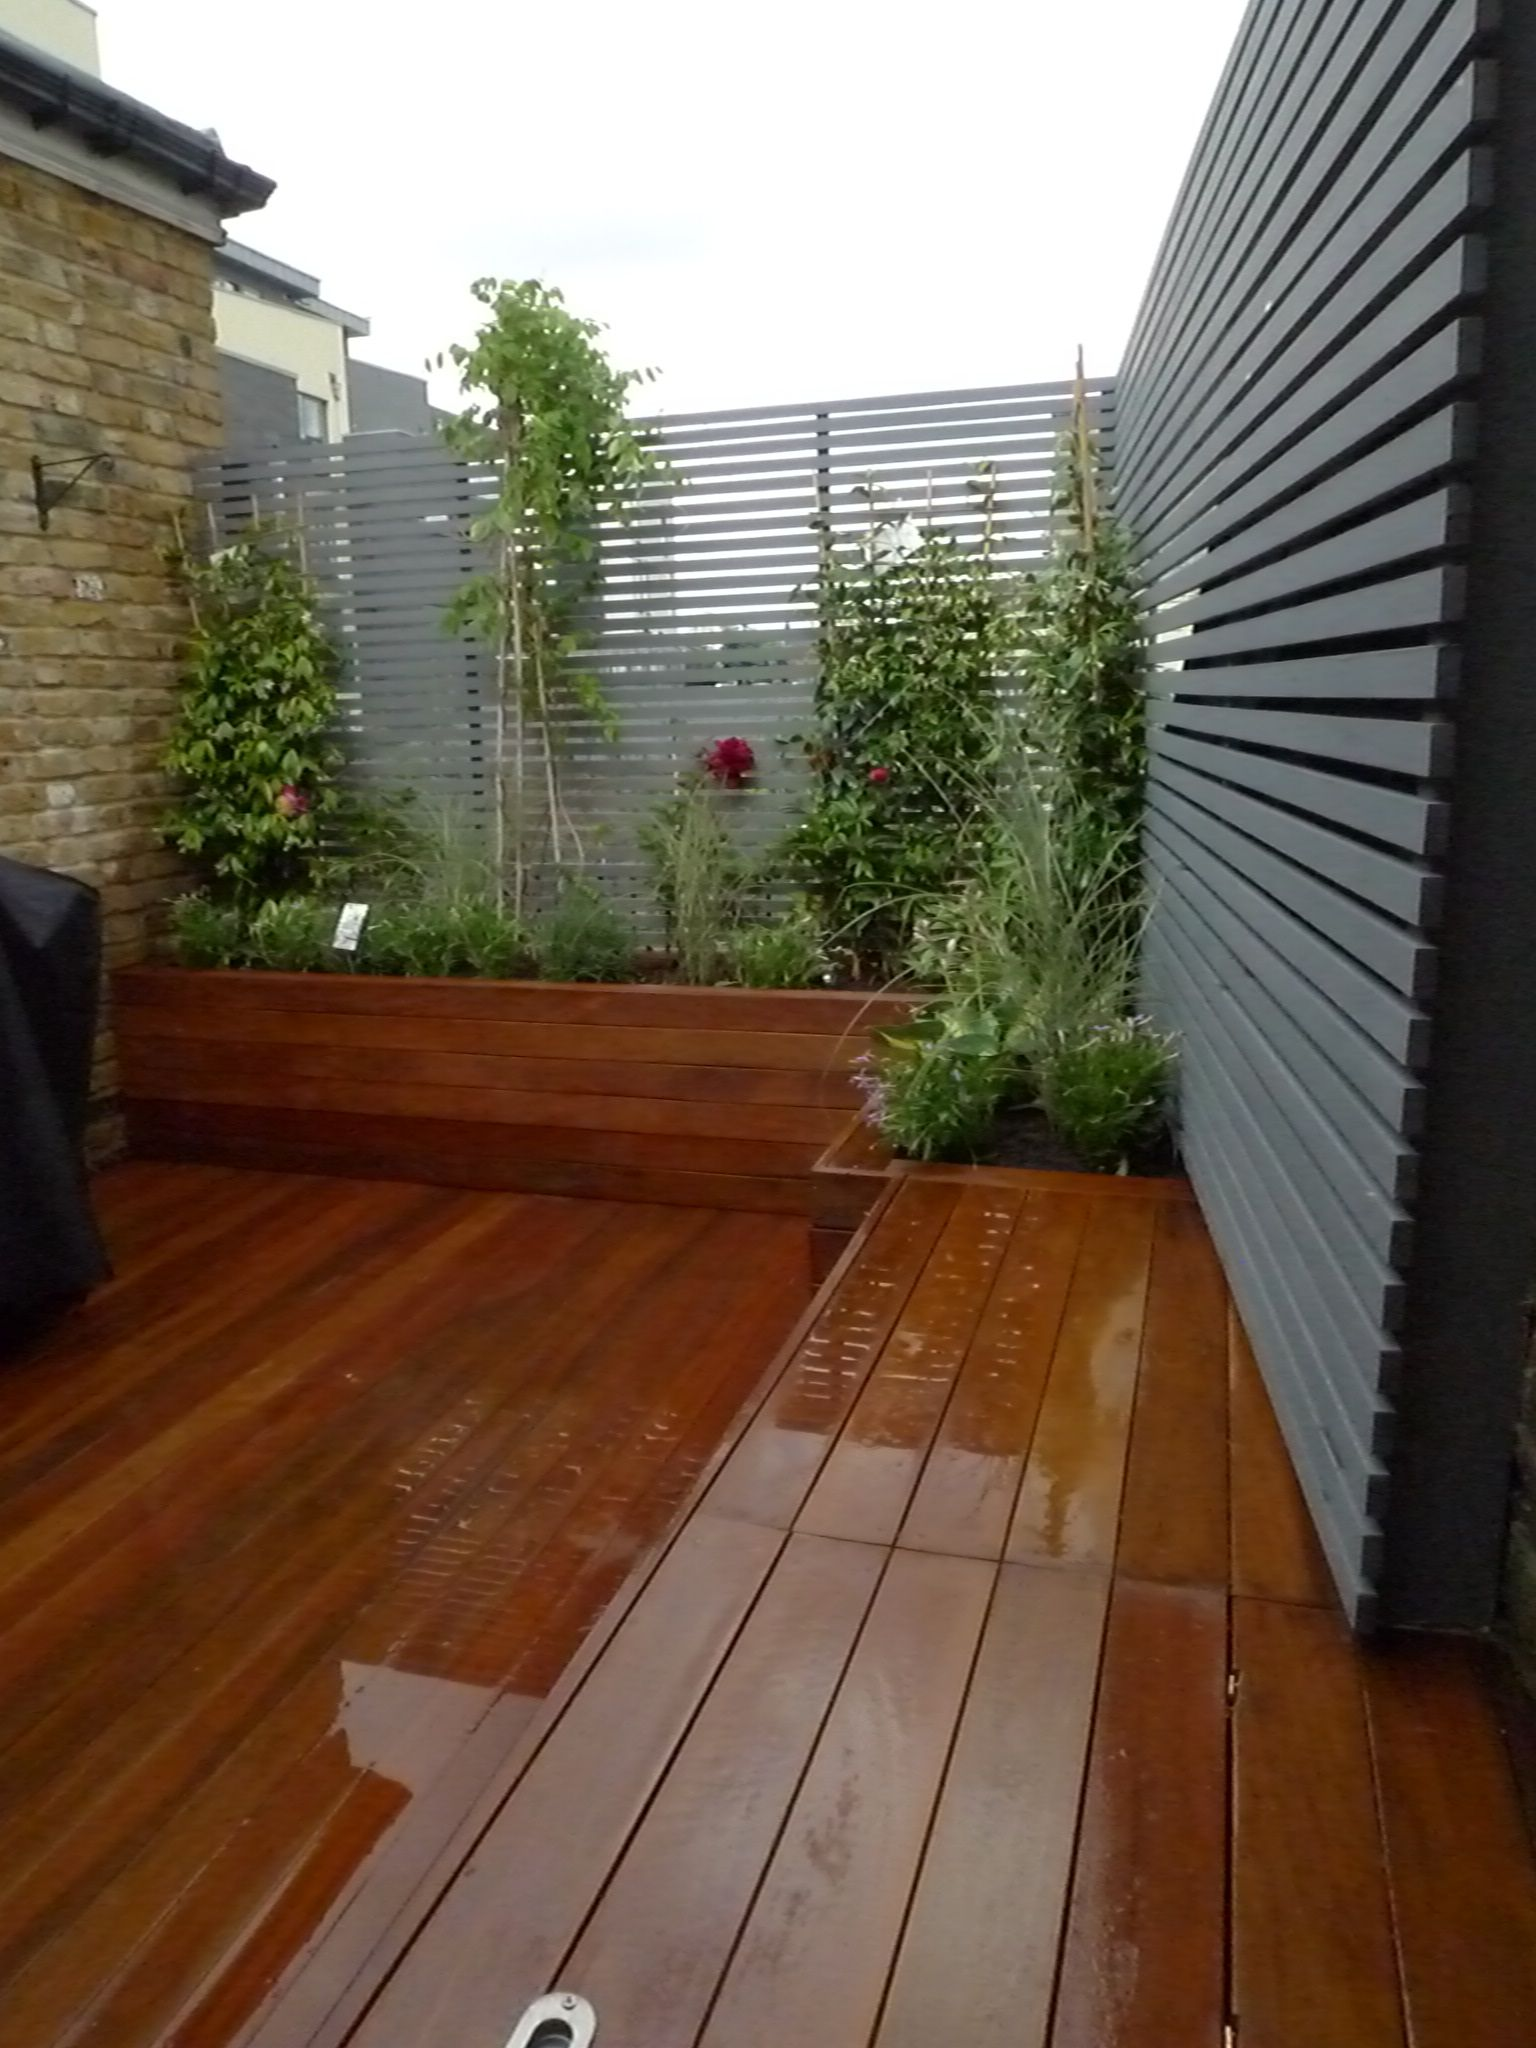 Garden Screening Ideas For Creating A Garden Privacy Screen - Backyard screening ideas